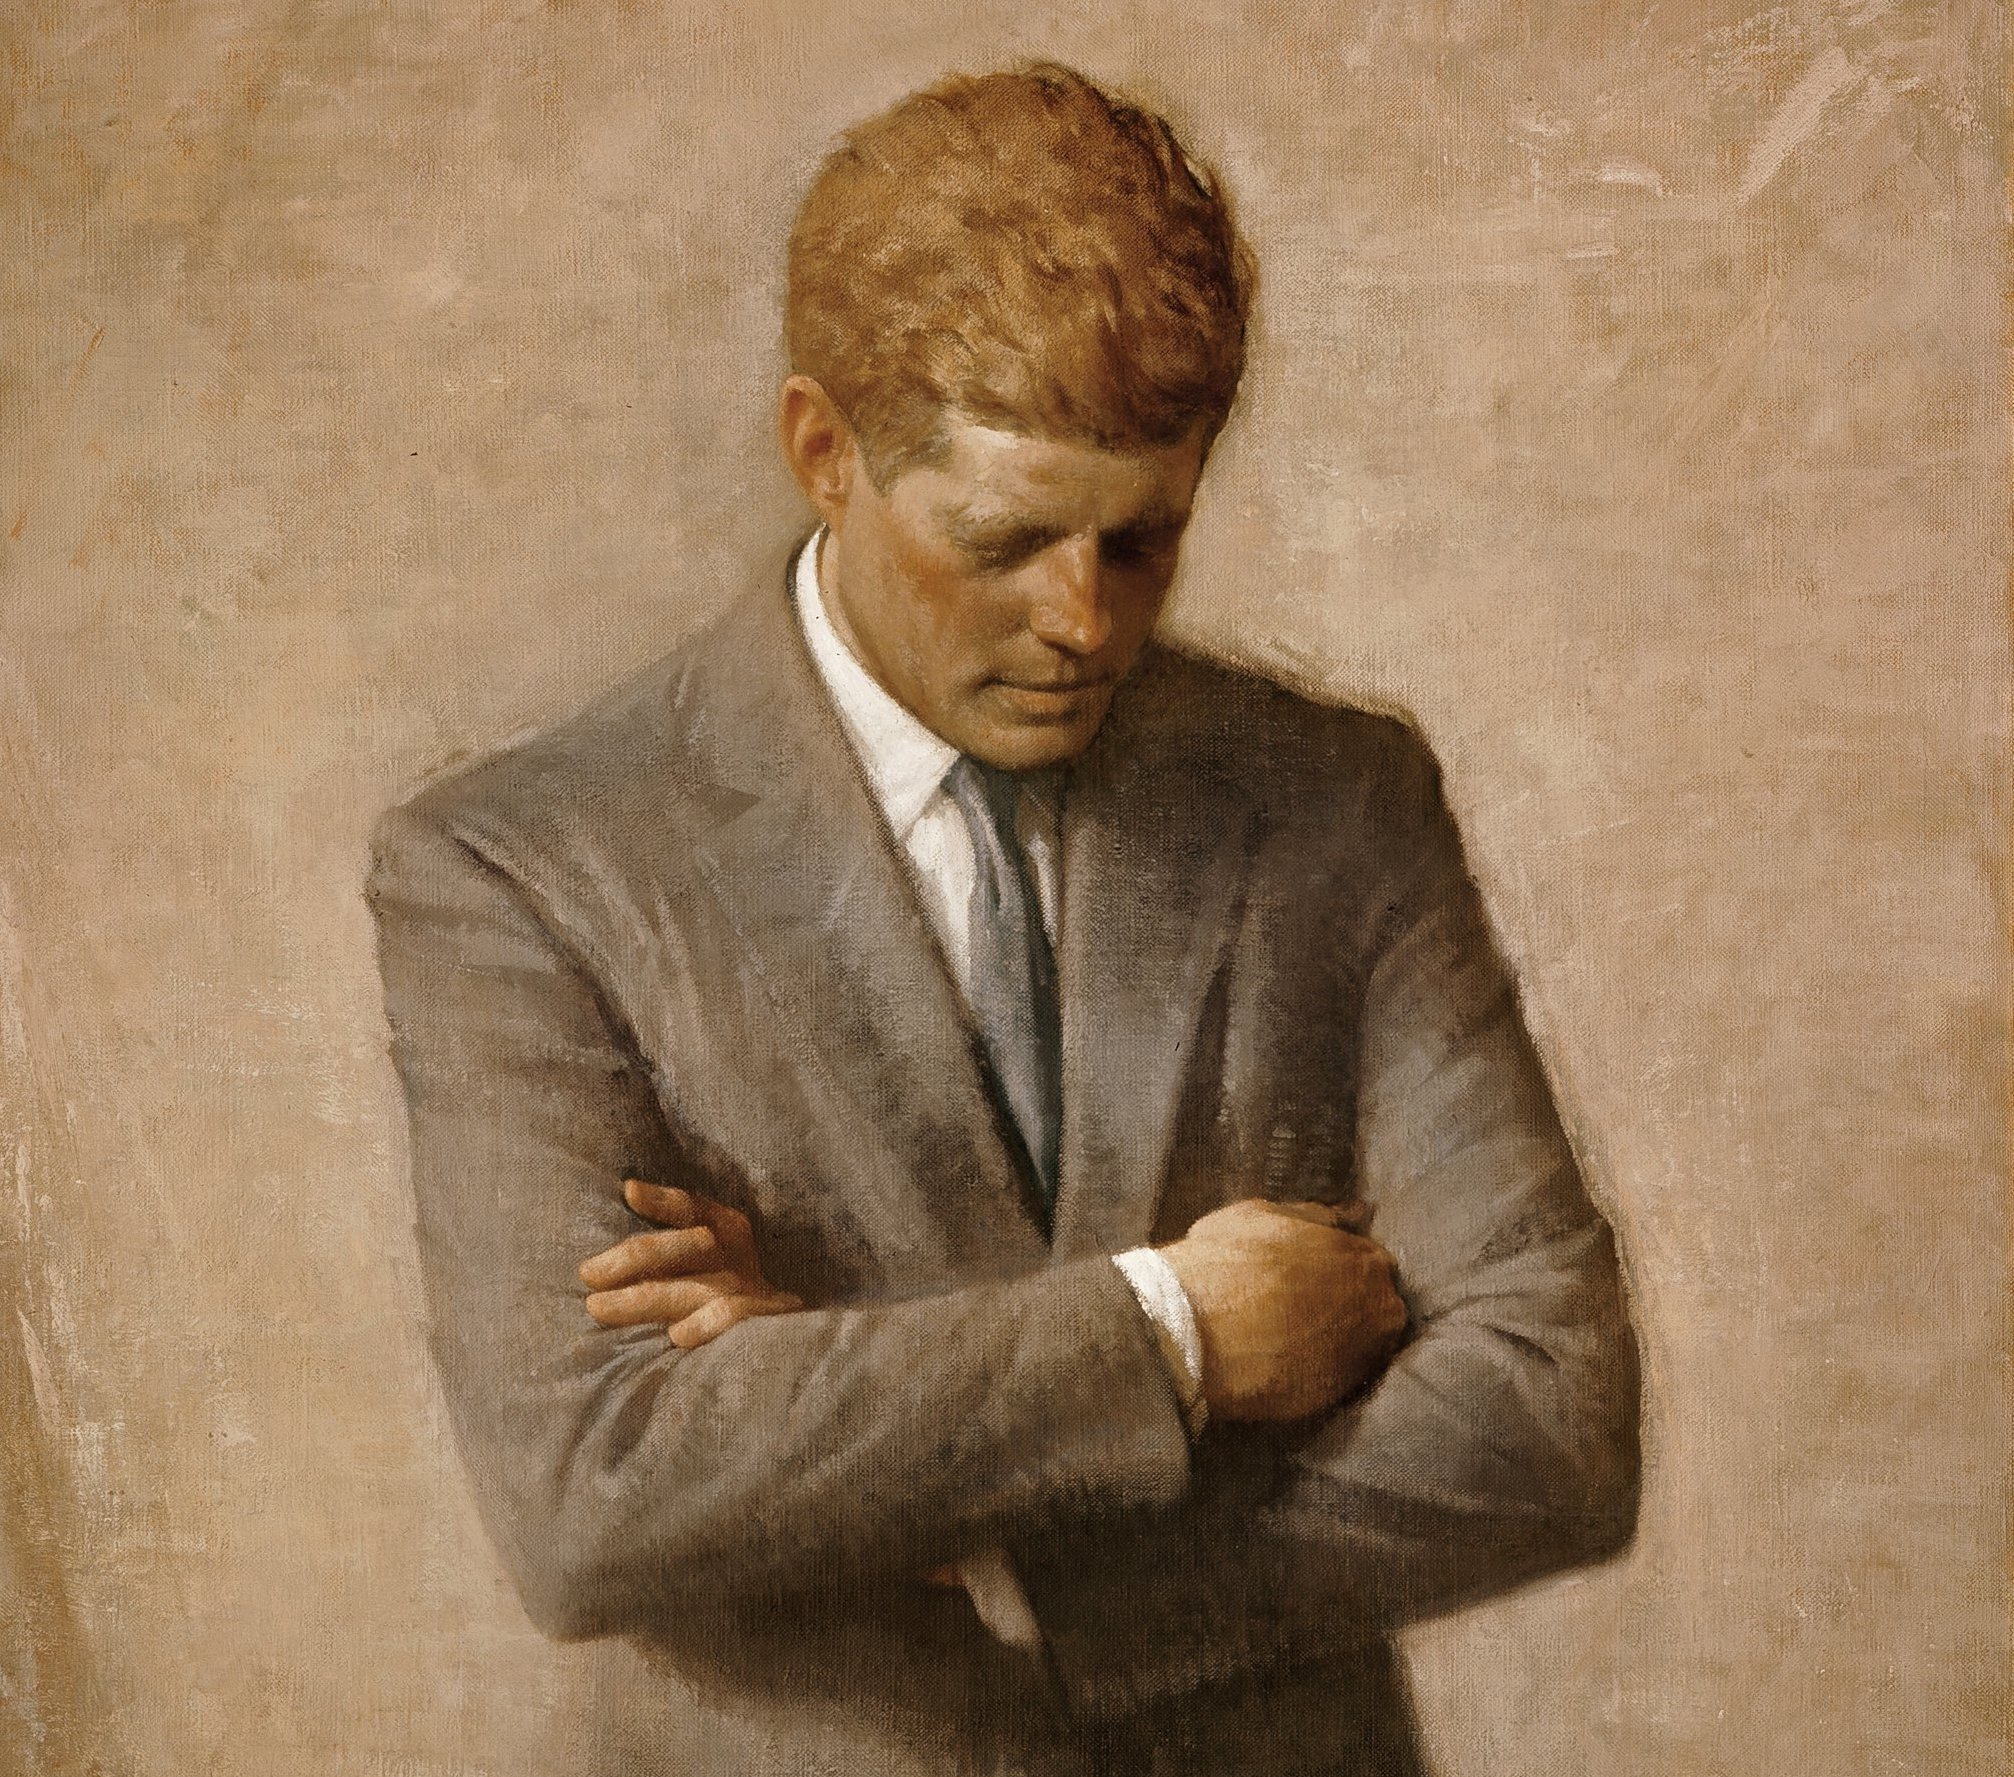 John F. Kennedy was a master of rhetorical devices. A quick look at his use of contrast and tricolon.